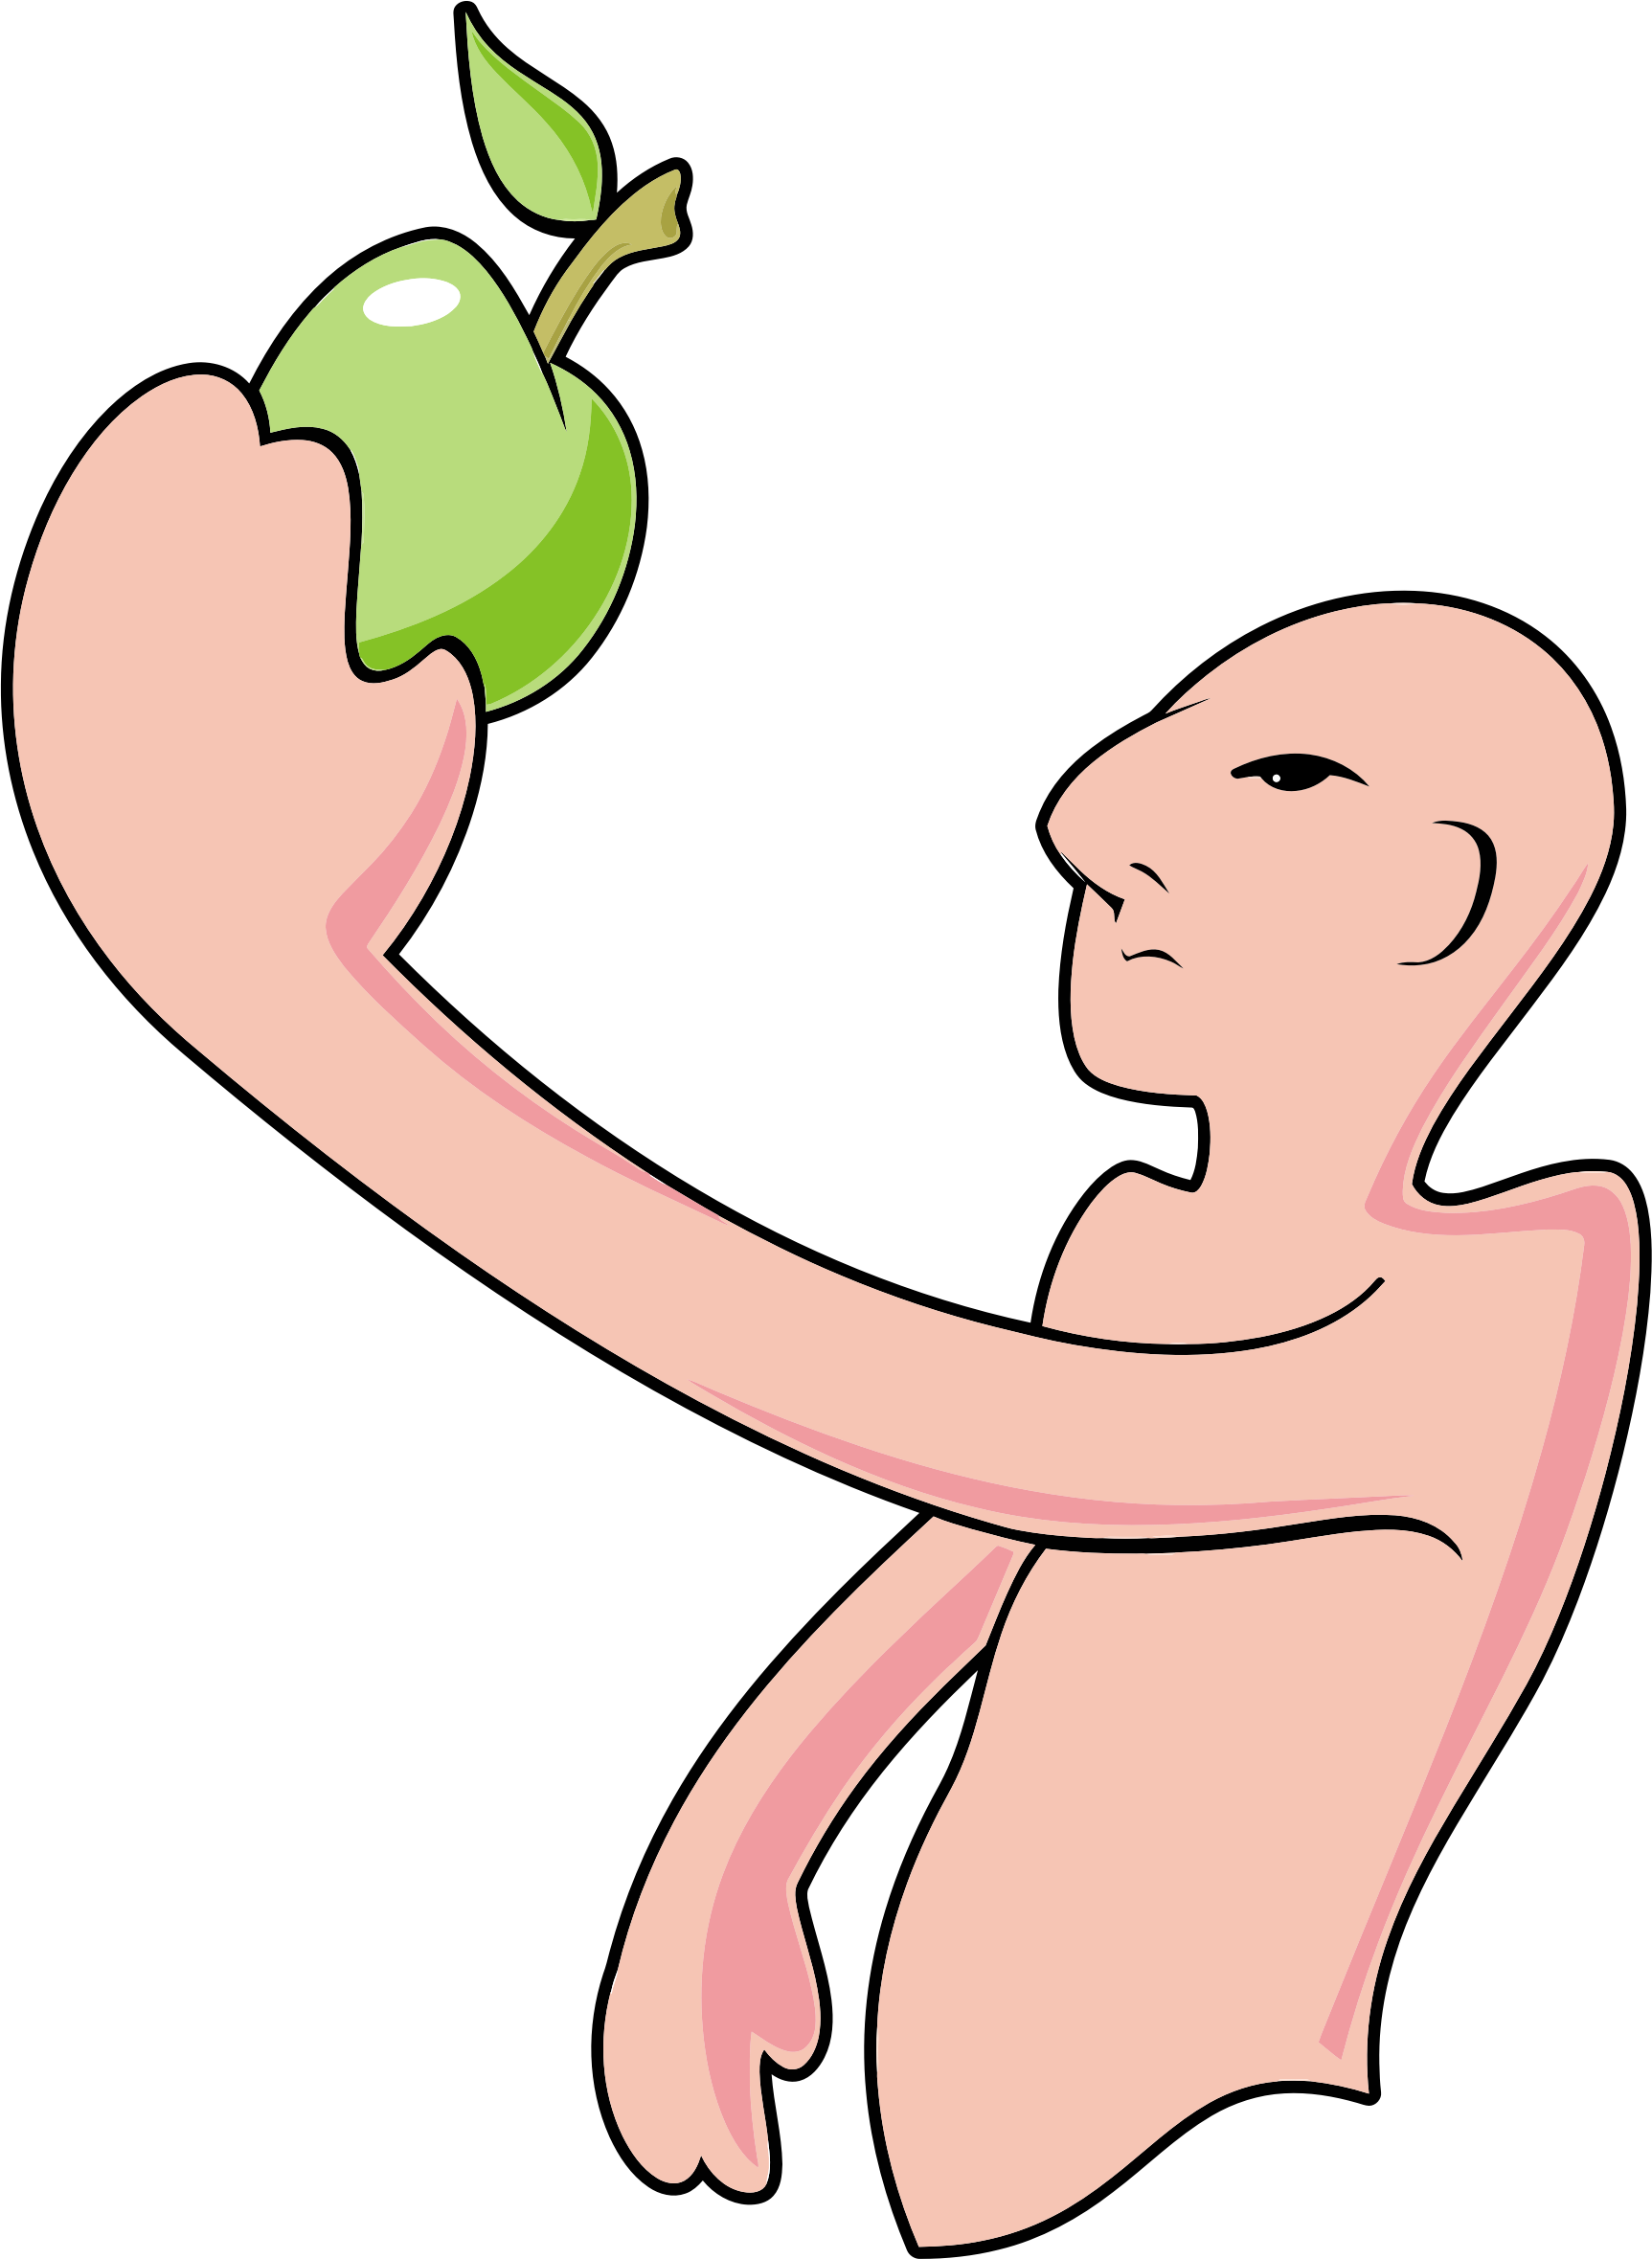 Bald Man And The Apple by GDJ